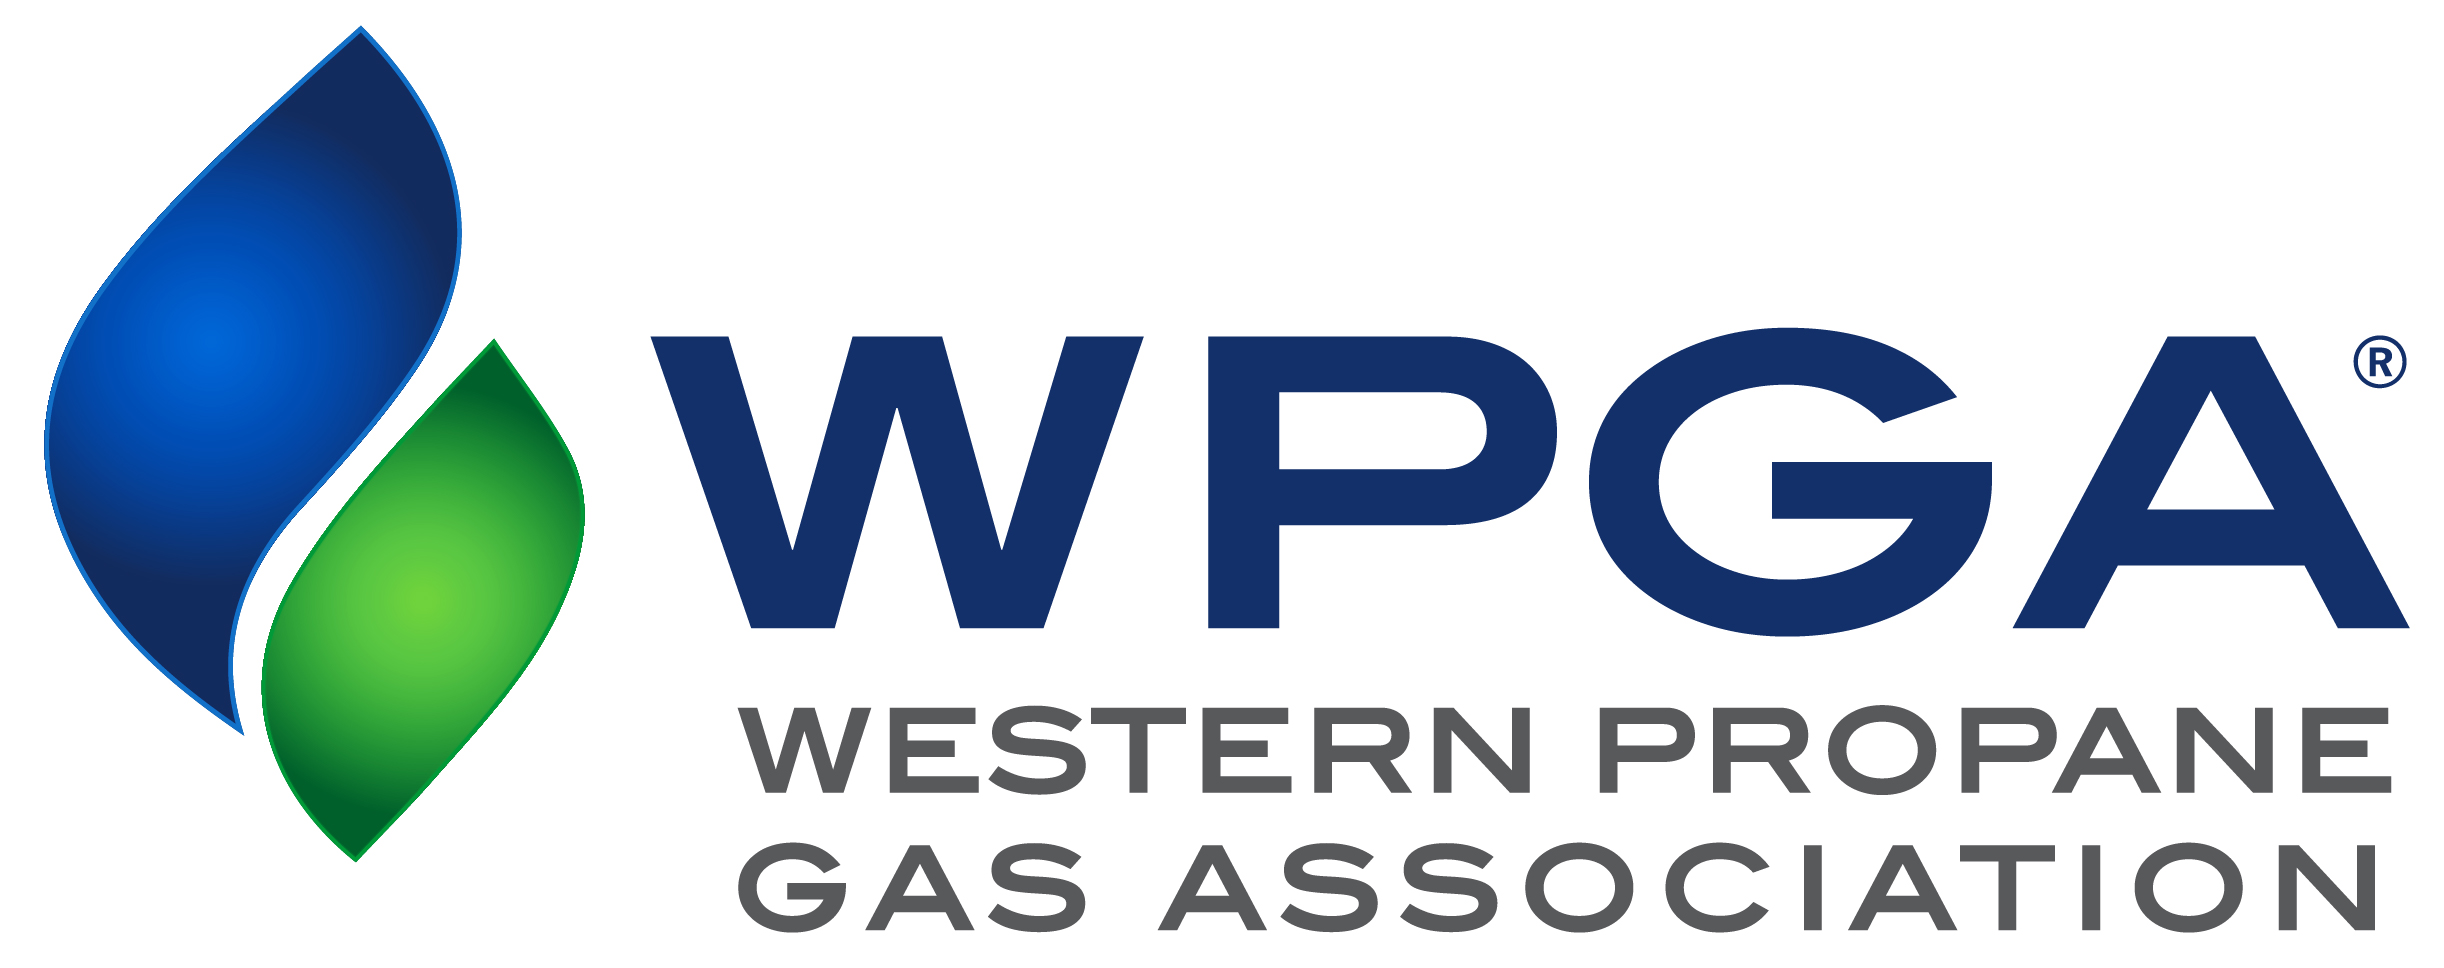 Home | Western Propane Gas Association | Clean American Energy